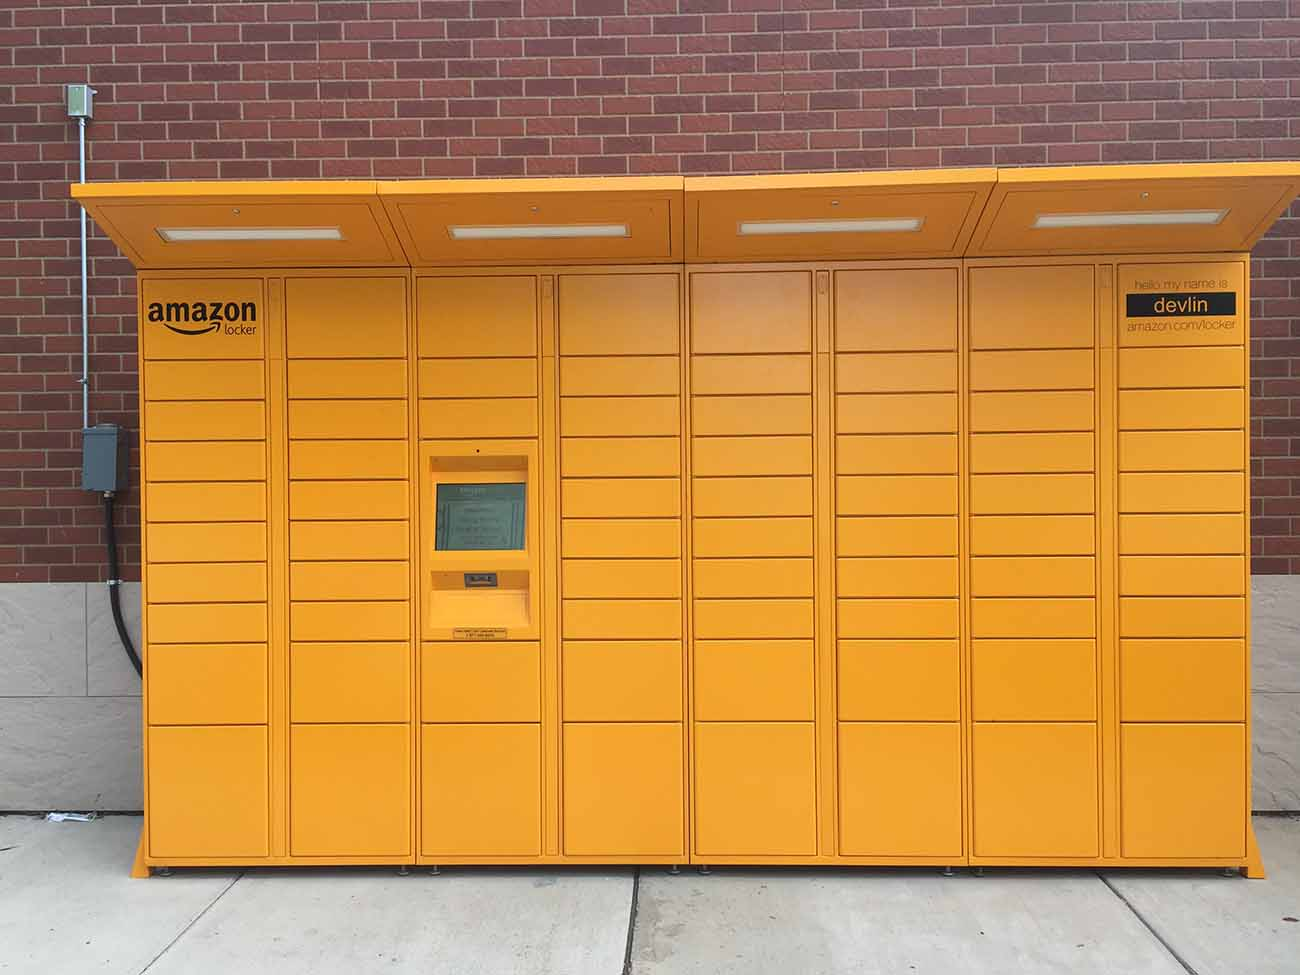 two more amazon lockers have been added to charlotte 39 s roster charlotte agenda. Black Bedroom Furniture Sets. Home Design Ideas